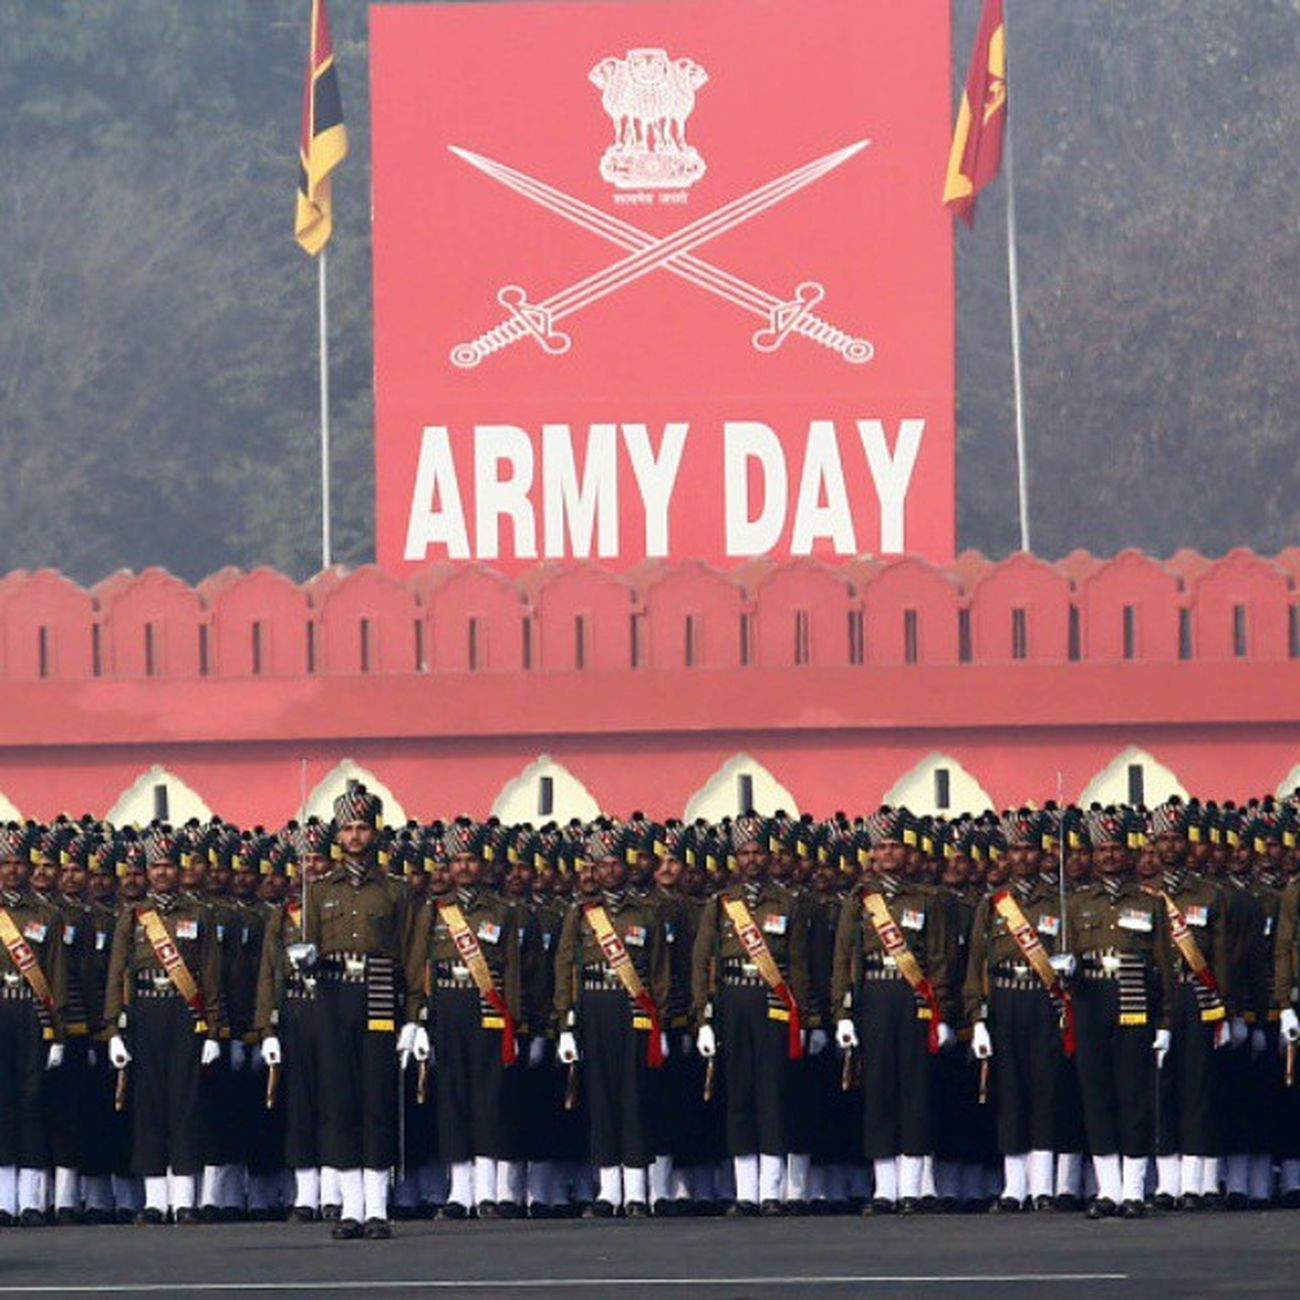 Armyday The big salutes to all soldiers and army's candidates for 67th ArmyDay2015 . It's honored and privileged for our country.